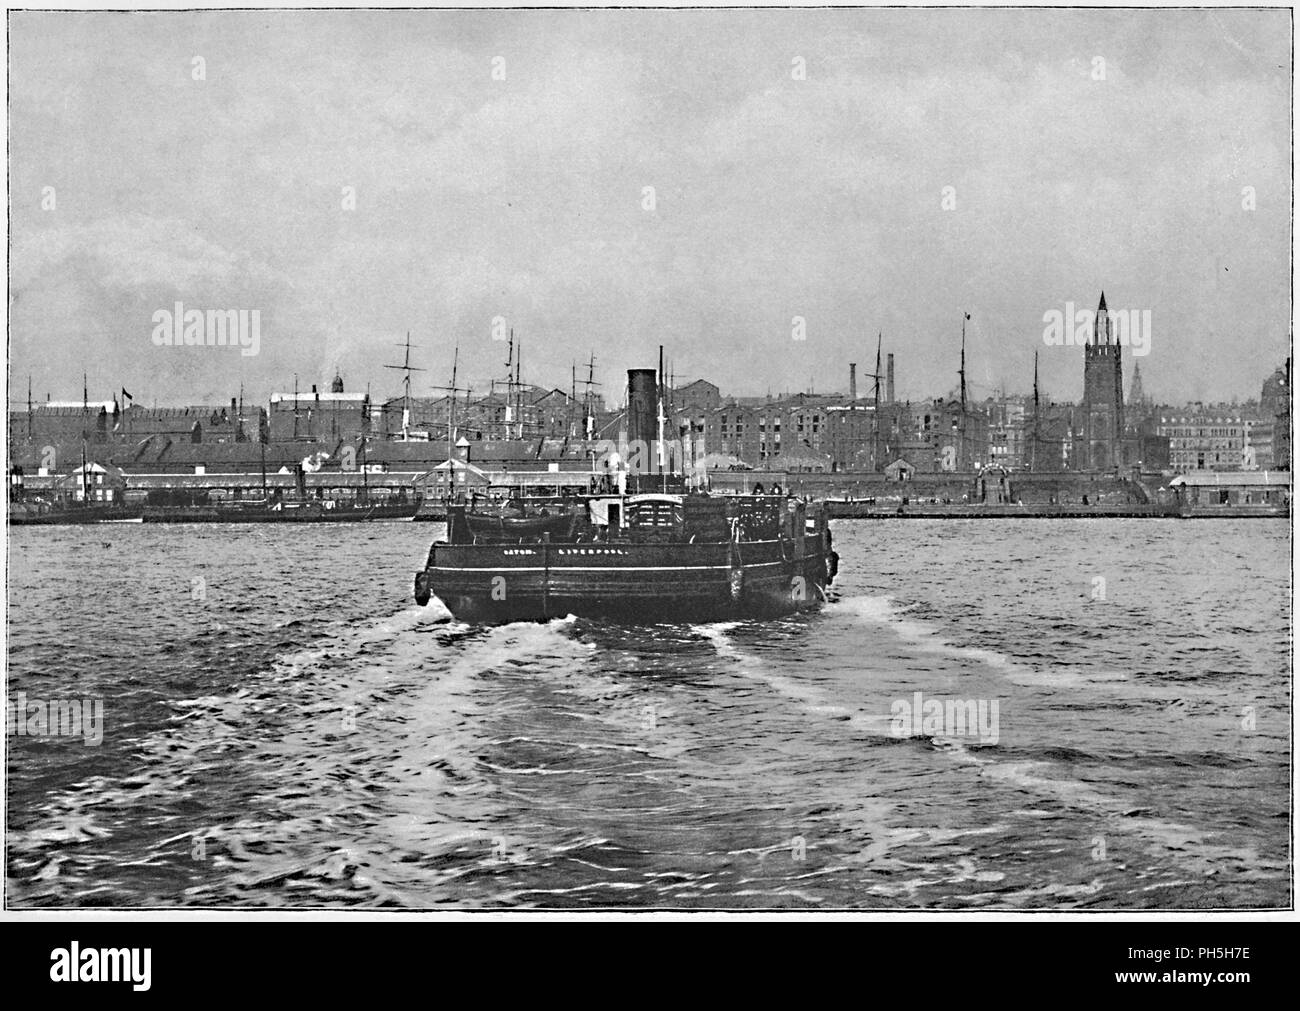 'Liverpool, from the Mersey', c1896. From Pictorial England and Wales. [Cassell and Company, Limited, London, Paris & Melbourne, c1896] - Stock Image